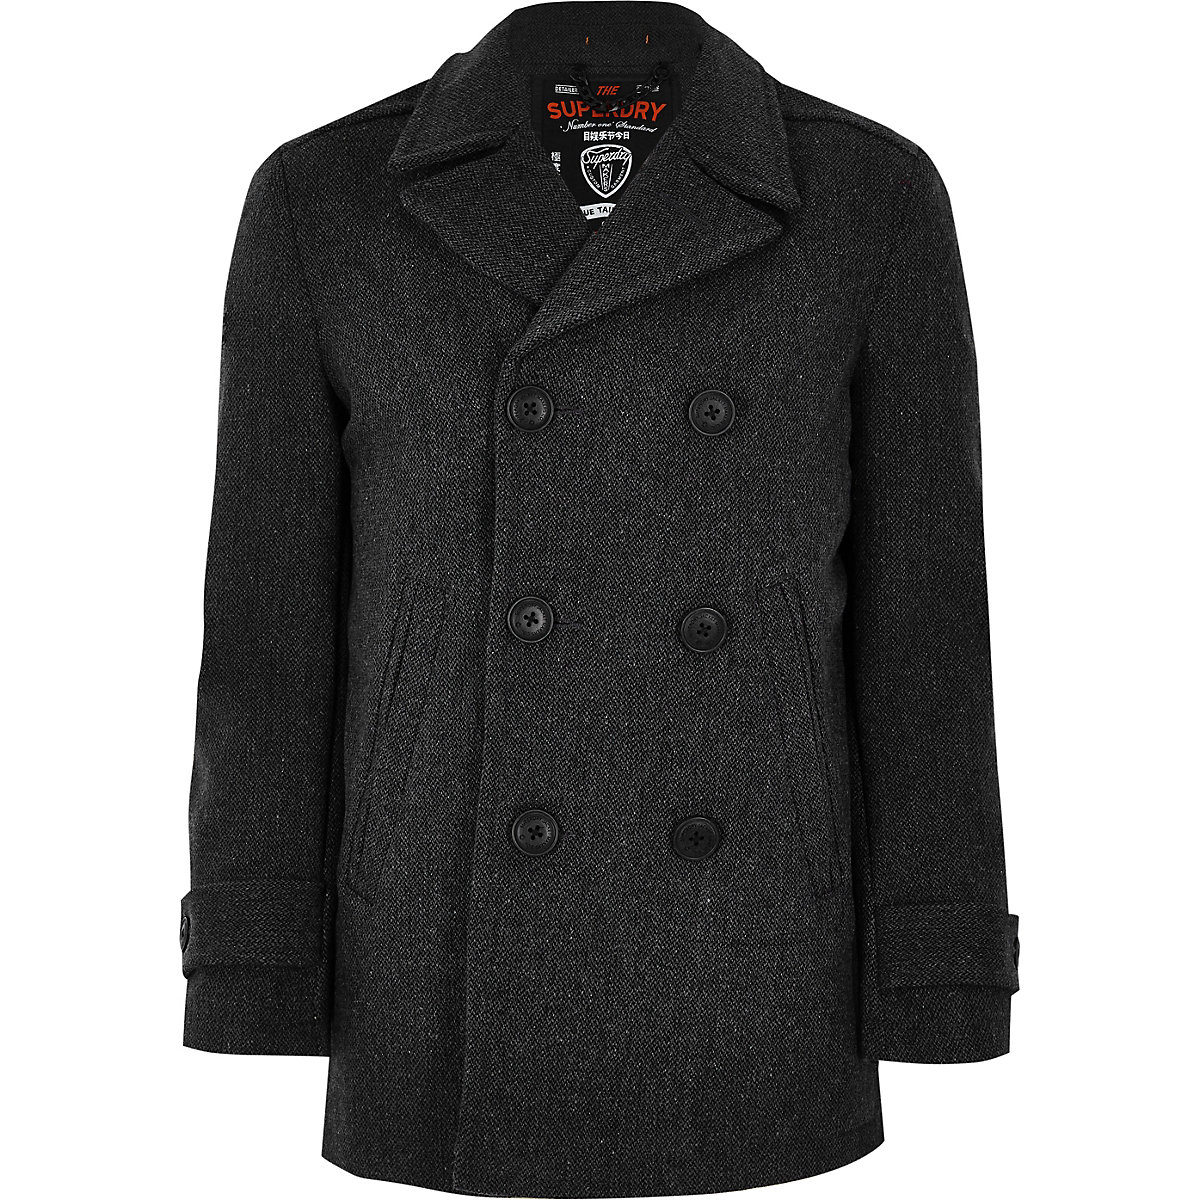 Superdry grey wool blend peacoat